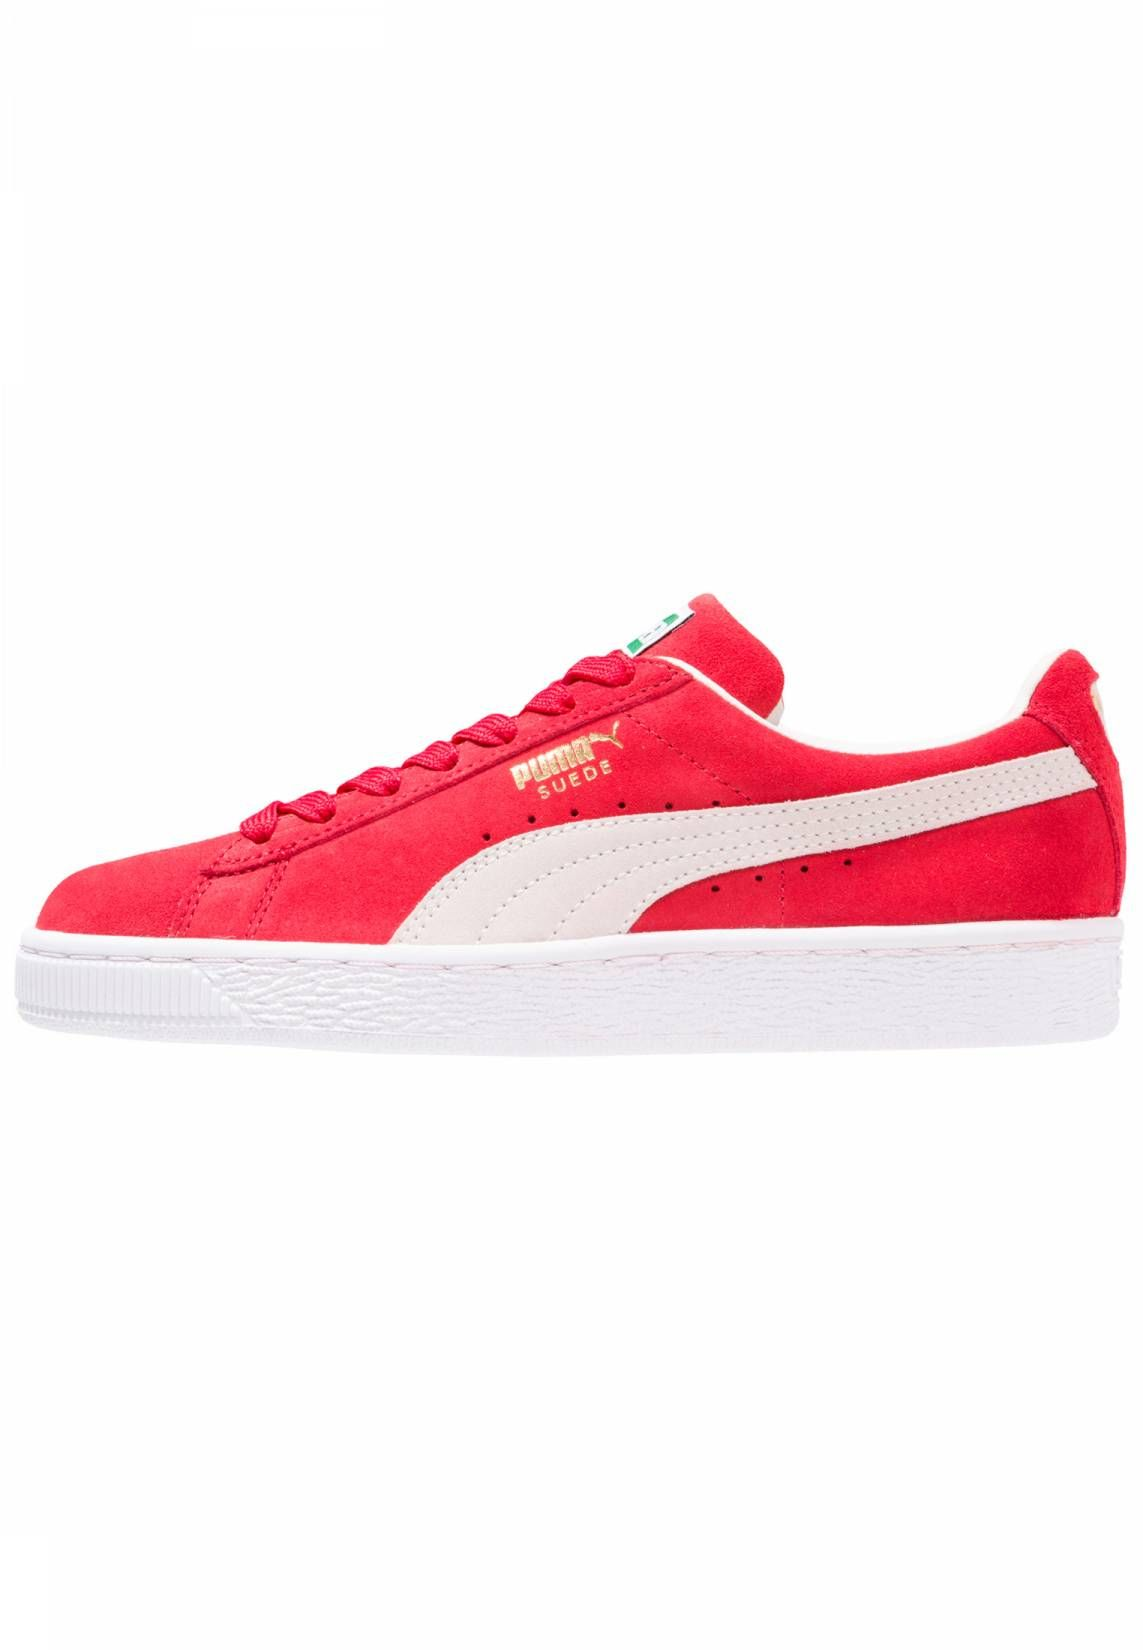 Puma. SUEDE SUPER Sneaker low high risk red. Sohle